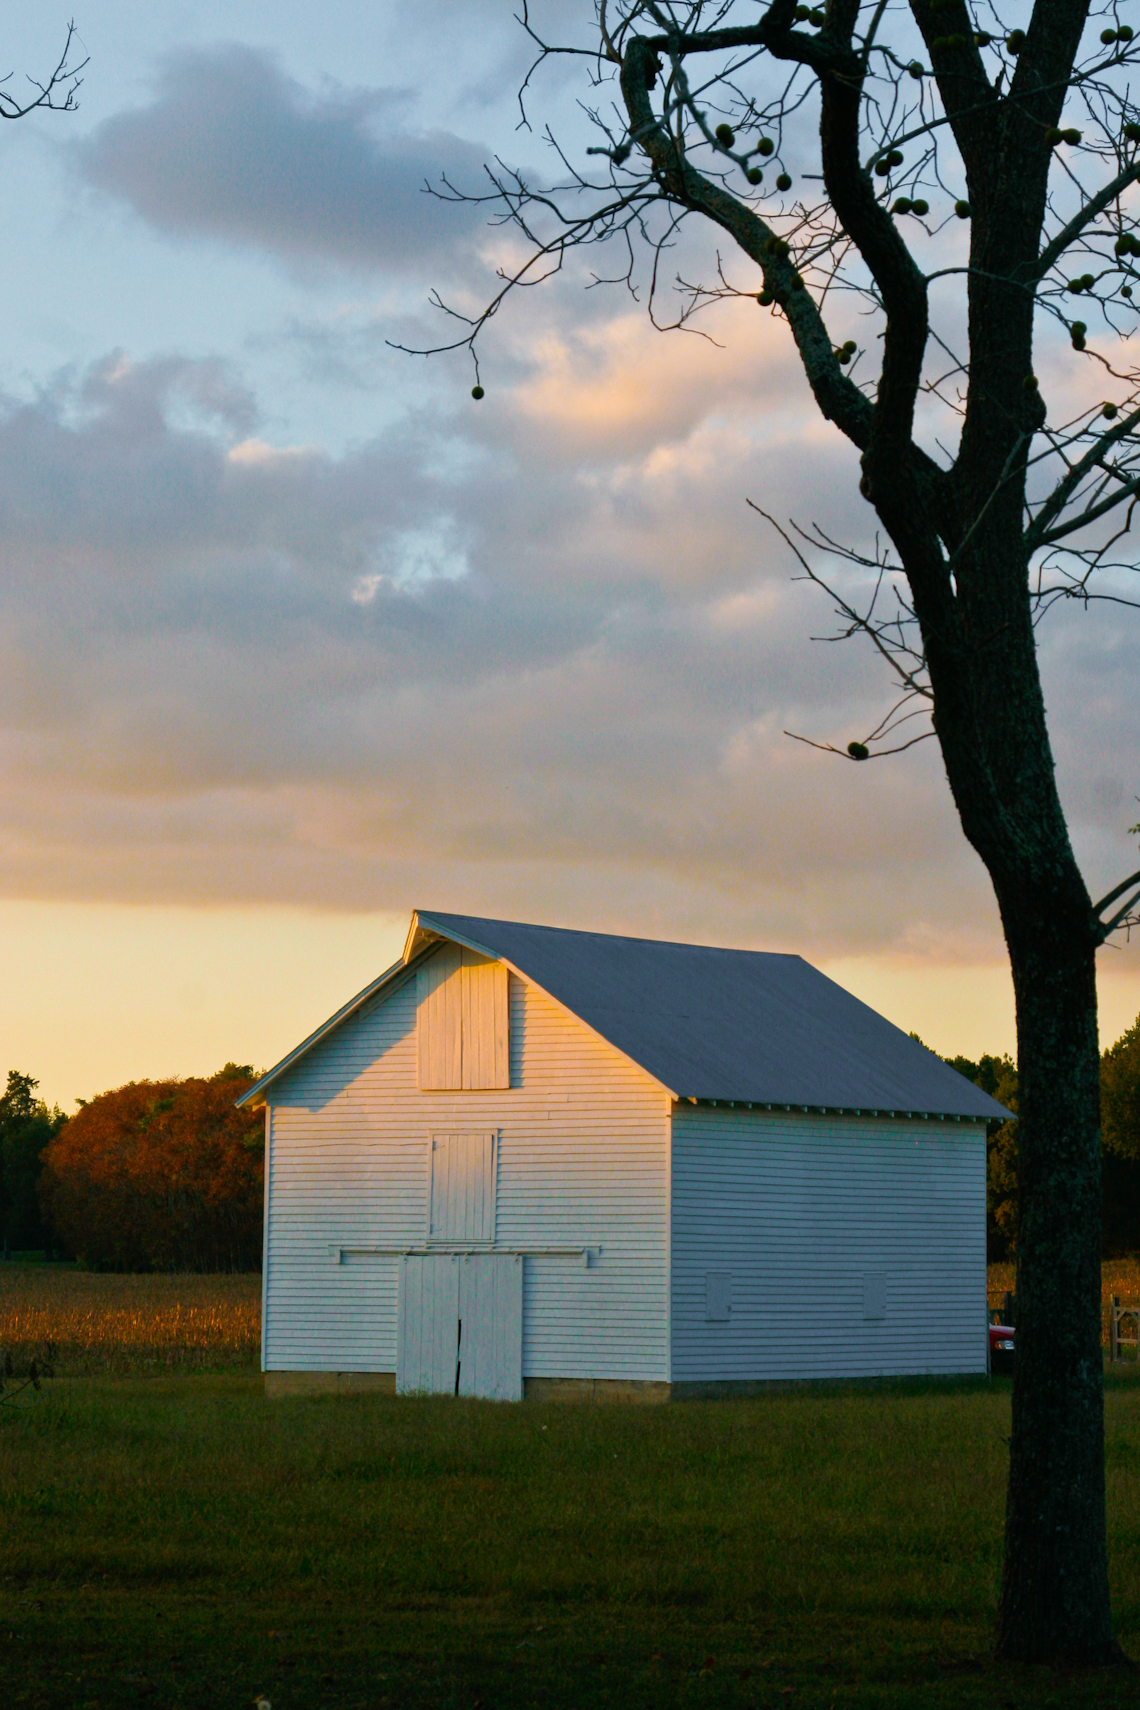 red-barn-silos-late-evening-dramatic-natural-light-0415